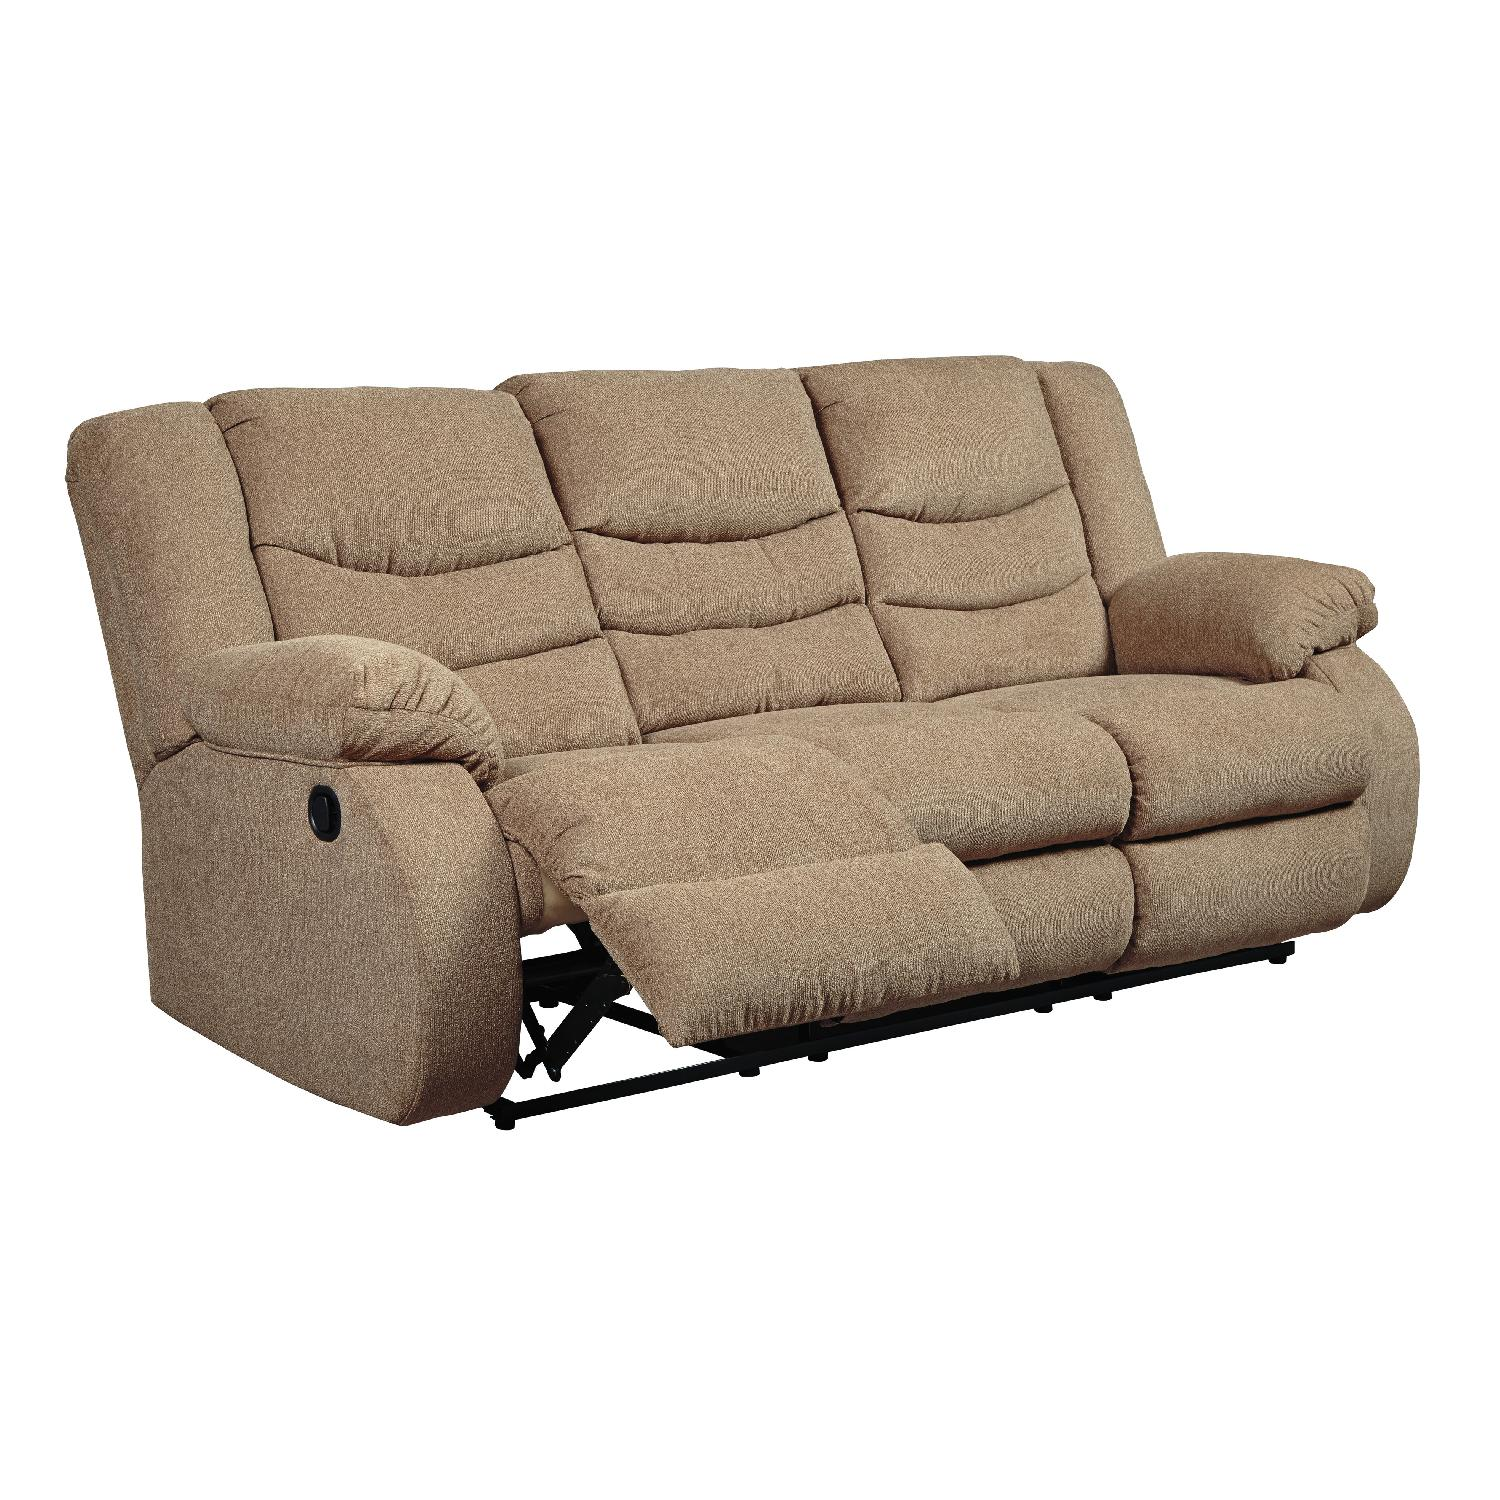 ... Ashleyu0027s Tulen Contemporary Reclining Sofa in Mocha Fabric-1 ...  sc 1 st  AptDeco & Ashleyu0027s Tulen Contemporary Reclining Sofa in Mocha - AptDeco islam-shia.org